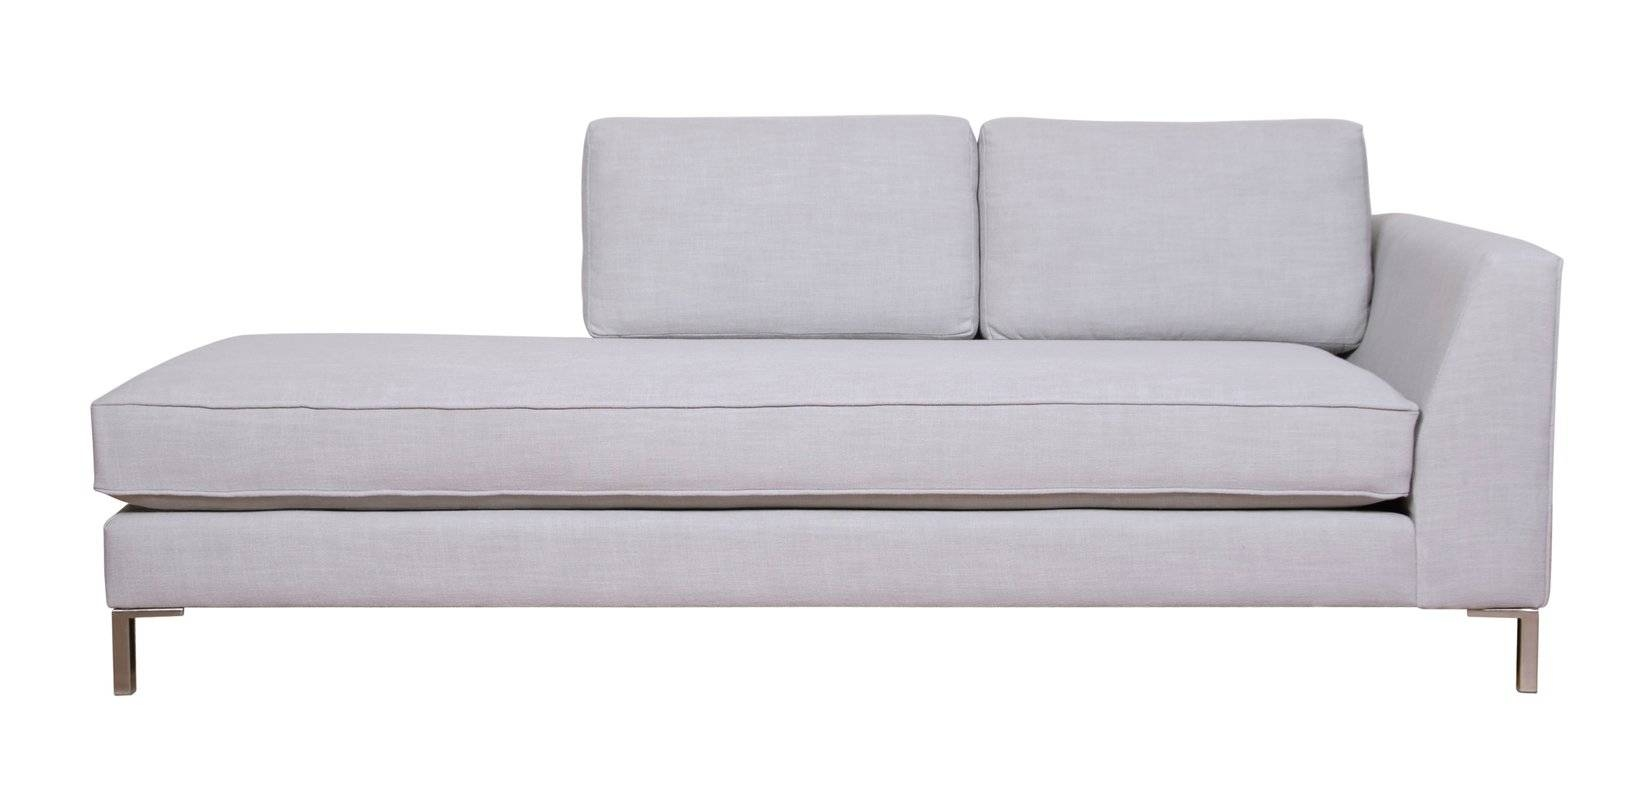 Modern Chaise Lounges | Allmodern with Angled Chaise Sofa (Image 11 of 30)